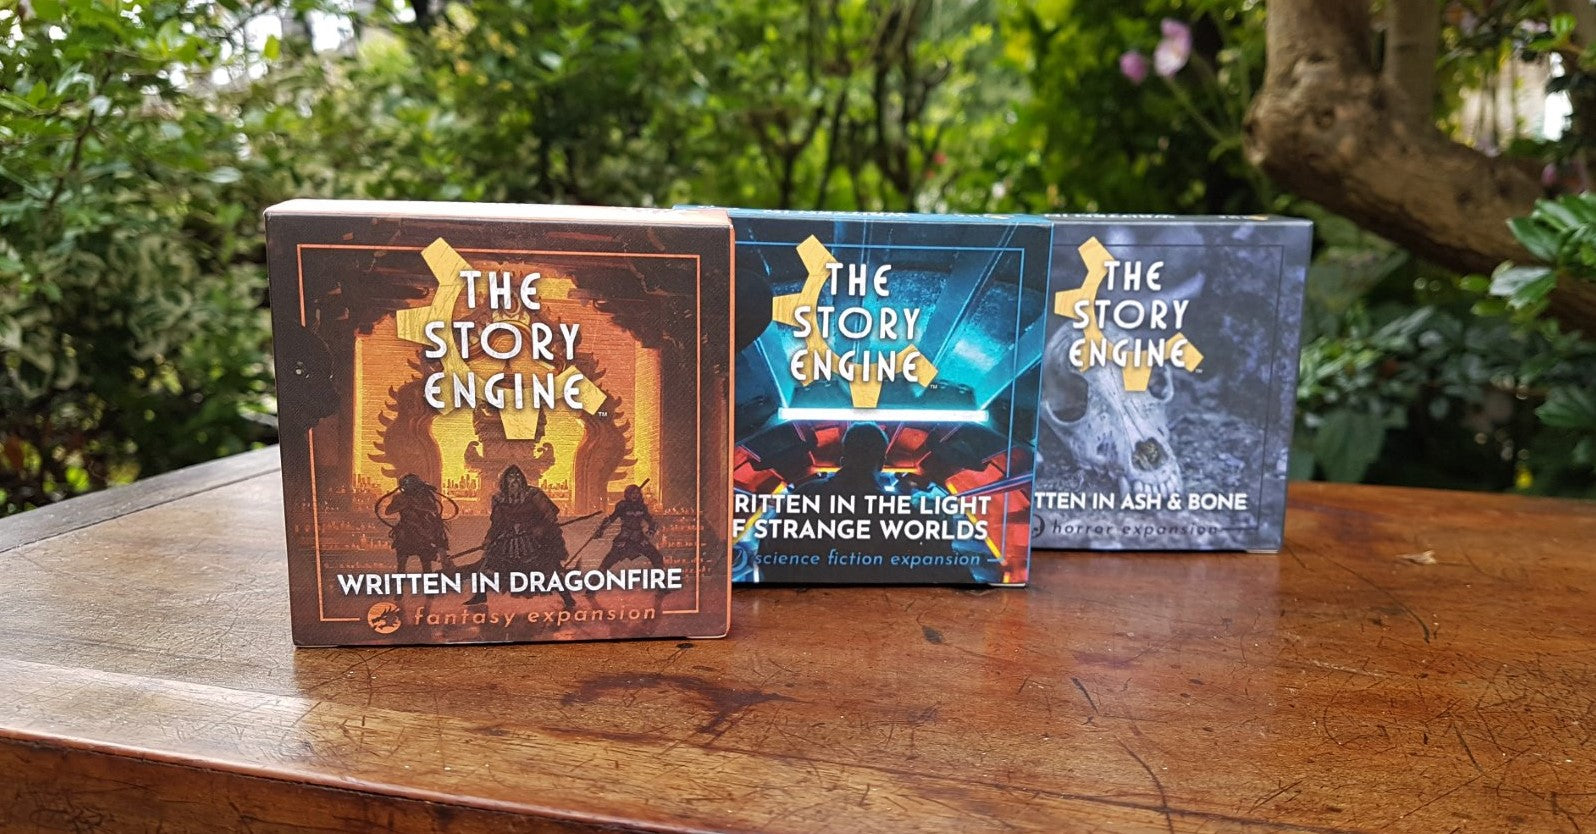 The Story Engine fantasy, since fiction, and horror expansions